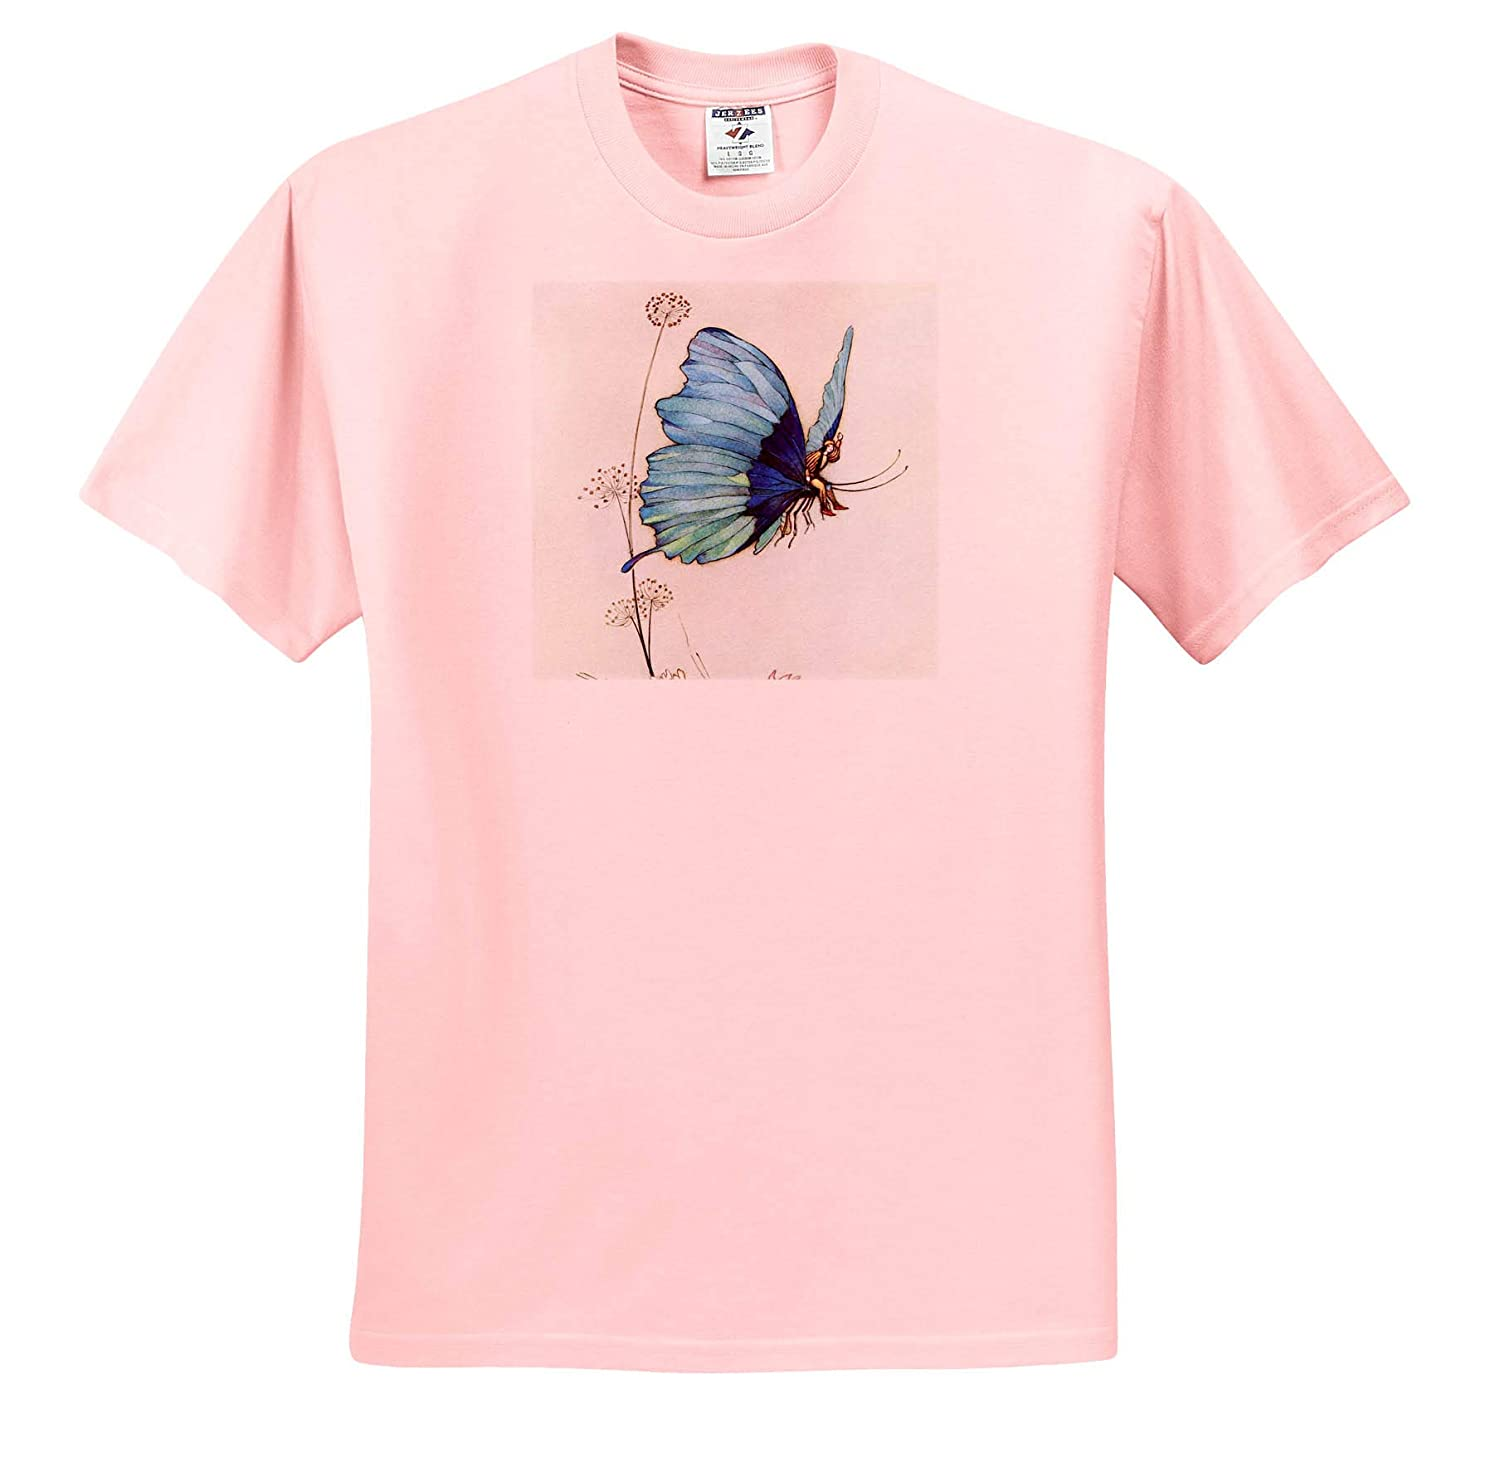 ts/_309591 Print of a Fairy in a Butterfly 3dRose Made in The Highlands Adult T-Shirt XL Art- Butterfly Took Wing